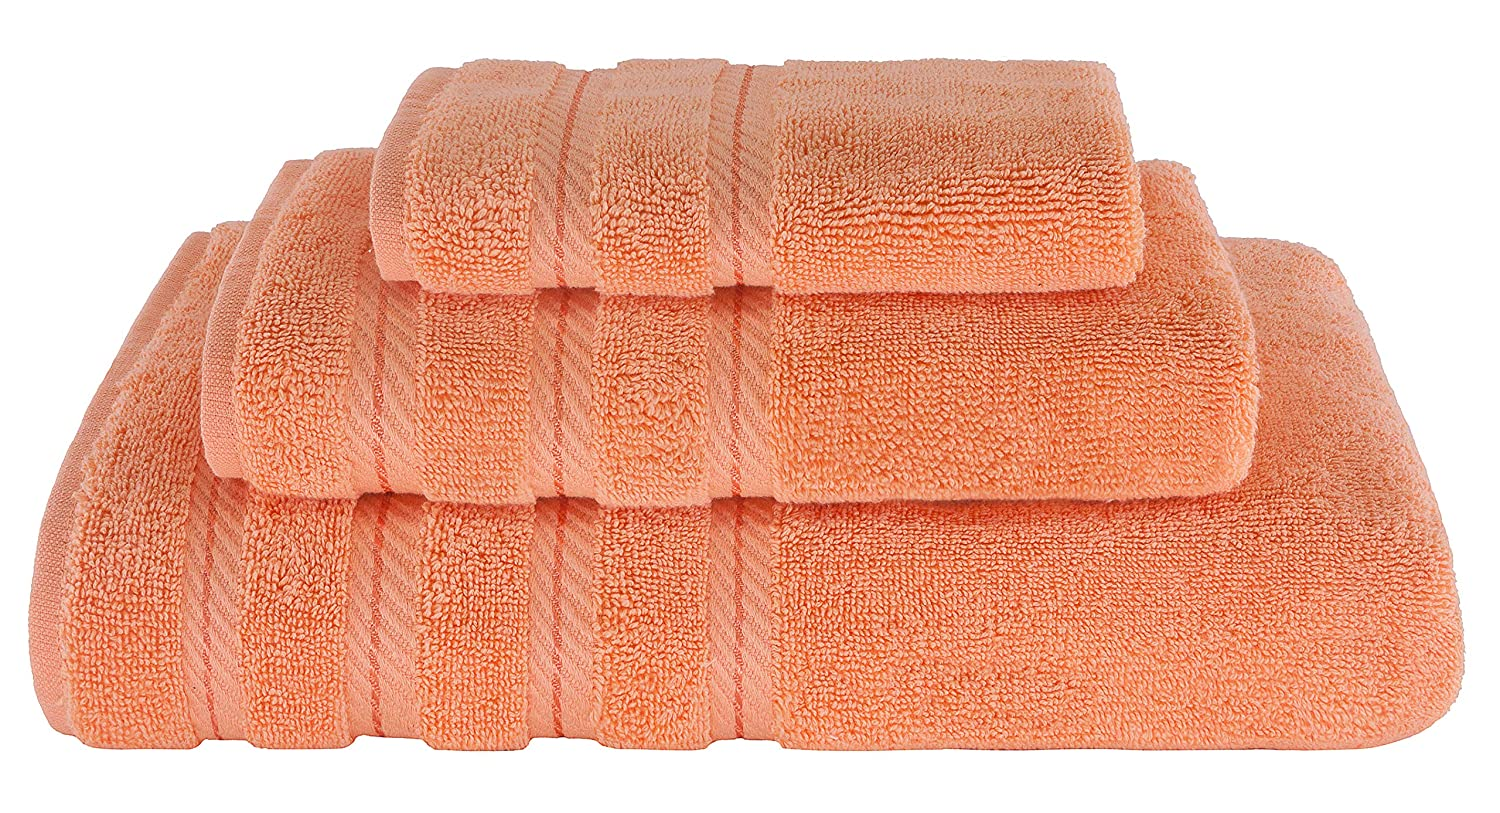 American Soft Linen Premium, Luxurious & Complete Set of 3 Piece Towel Set for Kitchen and Bathroom, Cotton for Maximum Softness and Absorbency, Malibu Peach